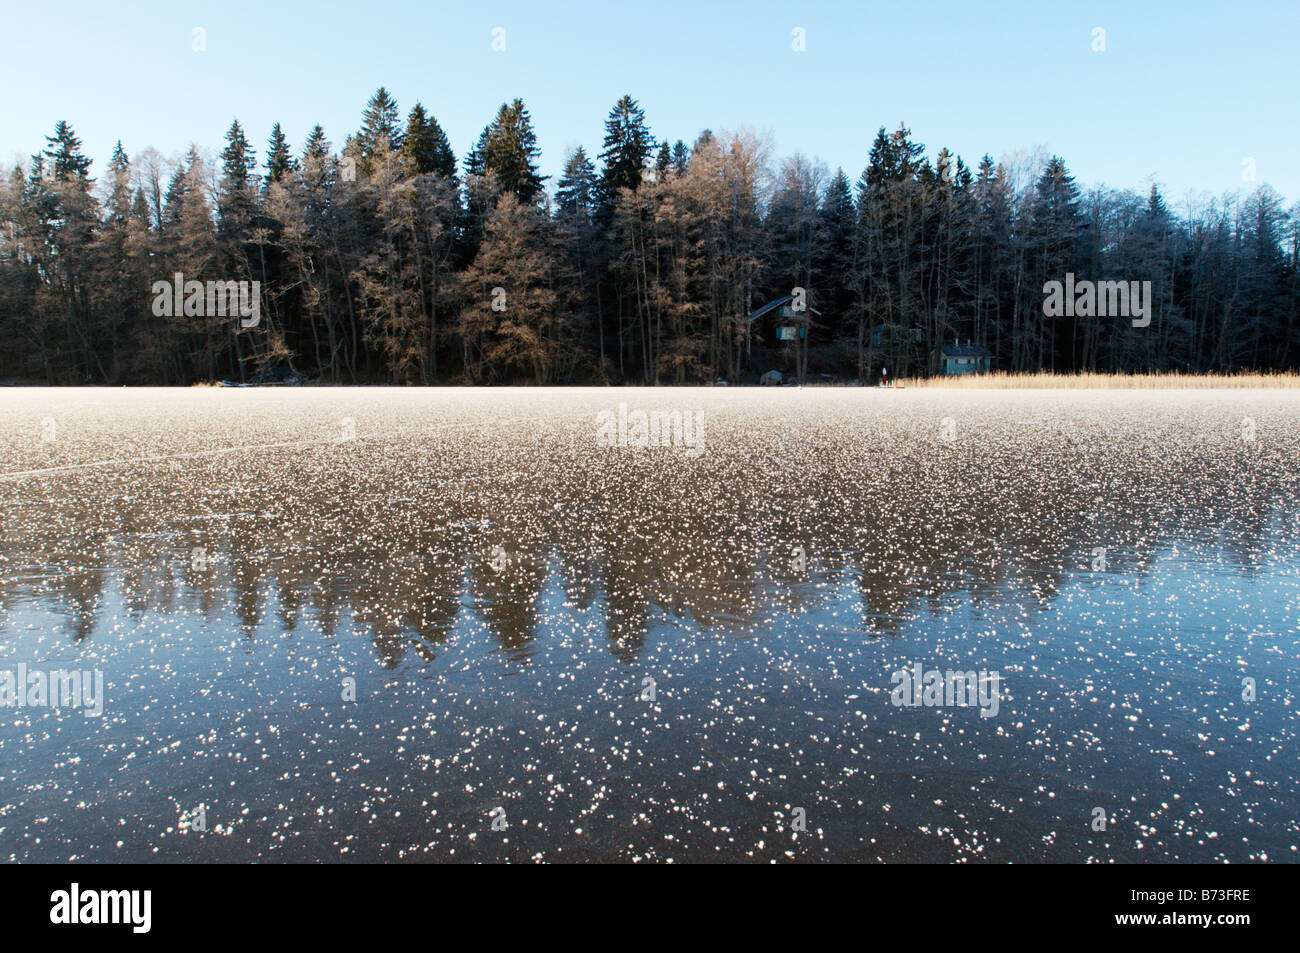 Summerhouse and sauna in woods by frozen lake, Lohja, Finland - Stock Image